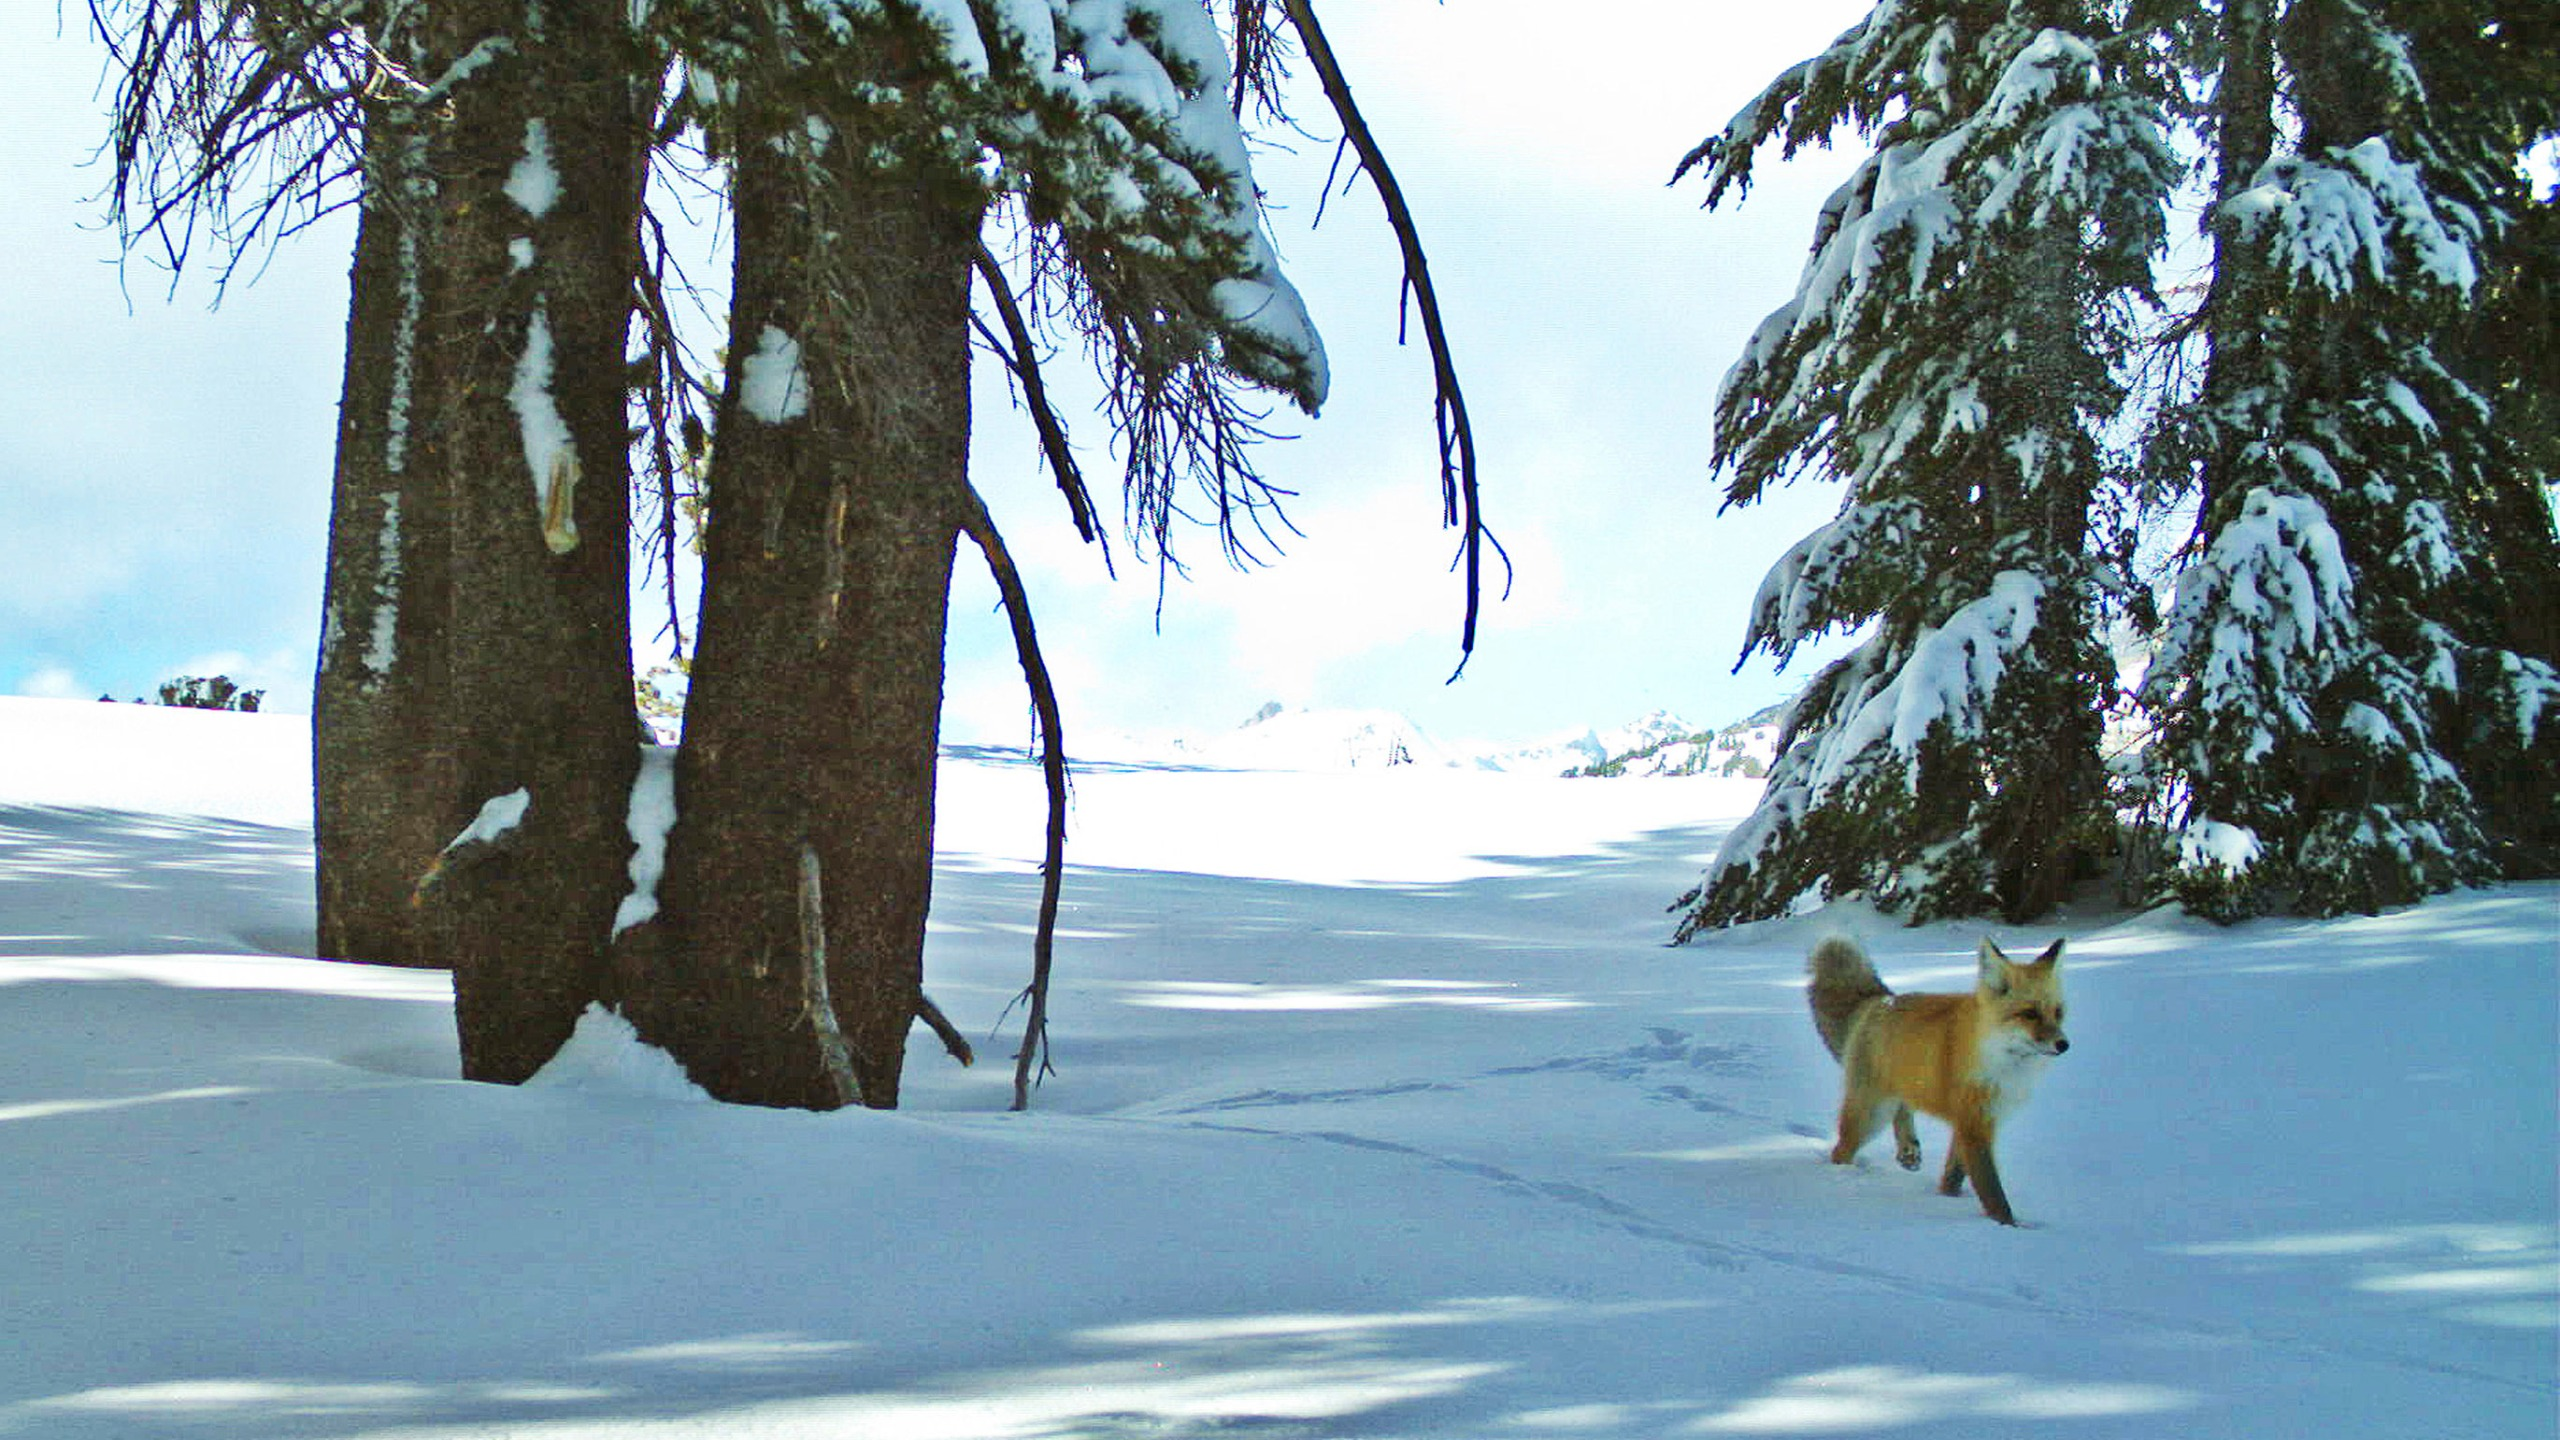 FILE - In this Dec. 13, 2014 file photo provided by the National Park Service from a remote motion-sensitive camera, a Sierra Nevada red fox walks in Yosemite National Park. An environmental group filed a lawsuit Thursday, April 15, 2021, alleging the federal government has failed to act on petitions to protect nine different species under the Endangered Species Act and failed to designate critical habitat for 11 others. The complaint covers species from Oregon to Delaware and asks the U.S. Fish and Wildlife Service to make decisions on the species after years of delays. (National Park Service via AP, File)